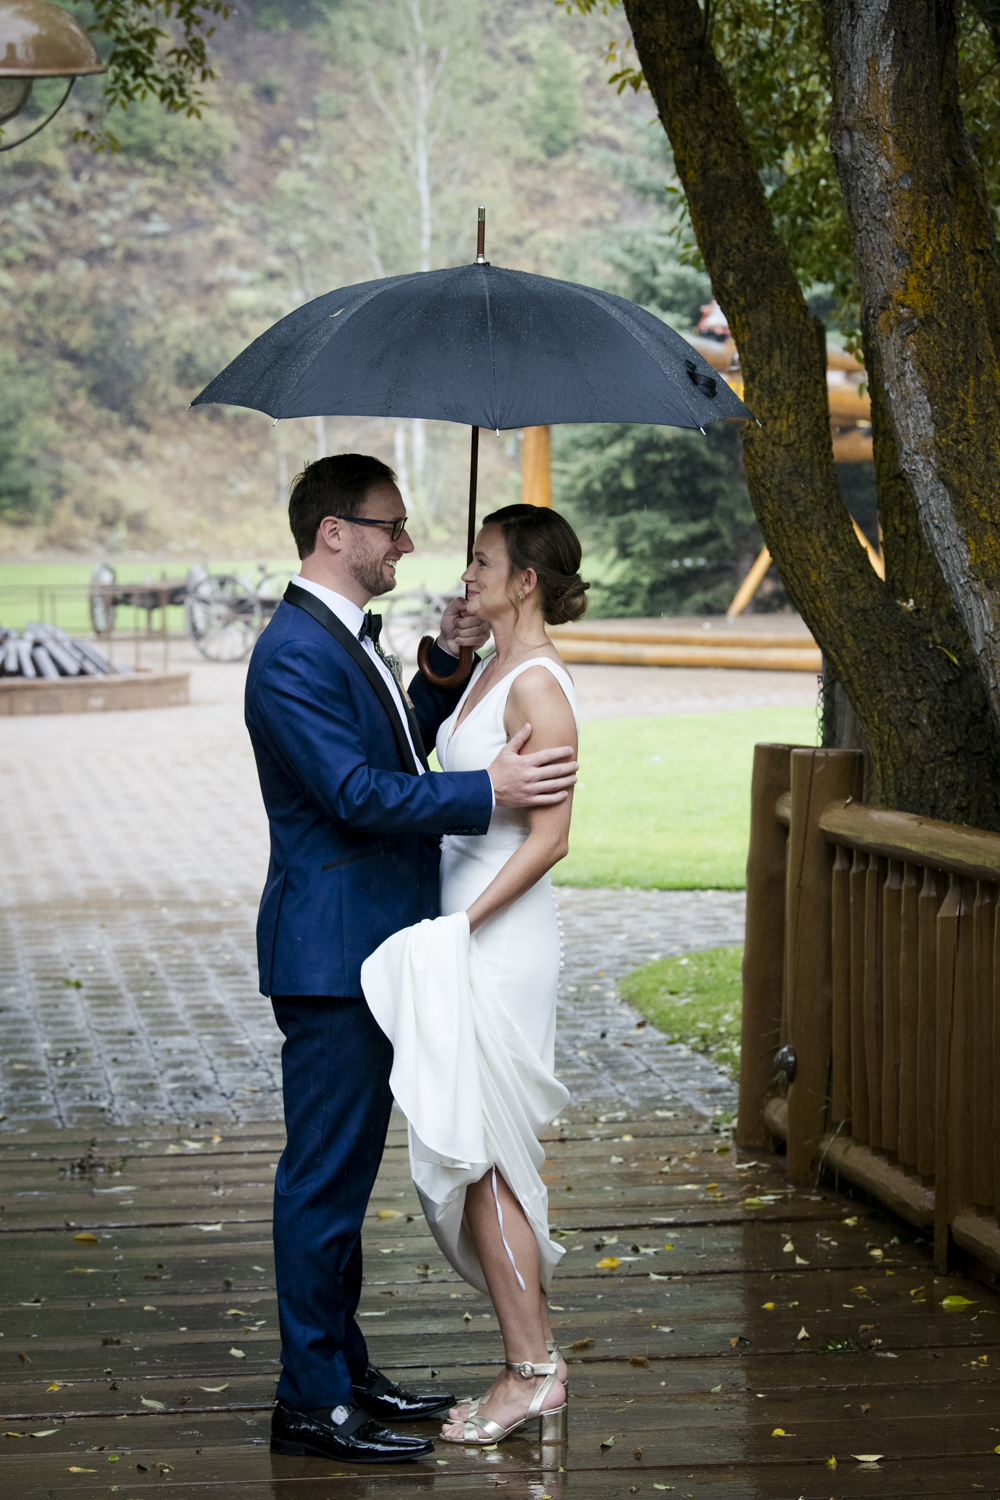 trailcreek_rainy_wedding-018.jpg